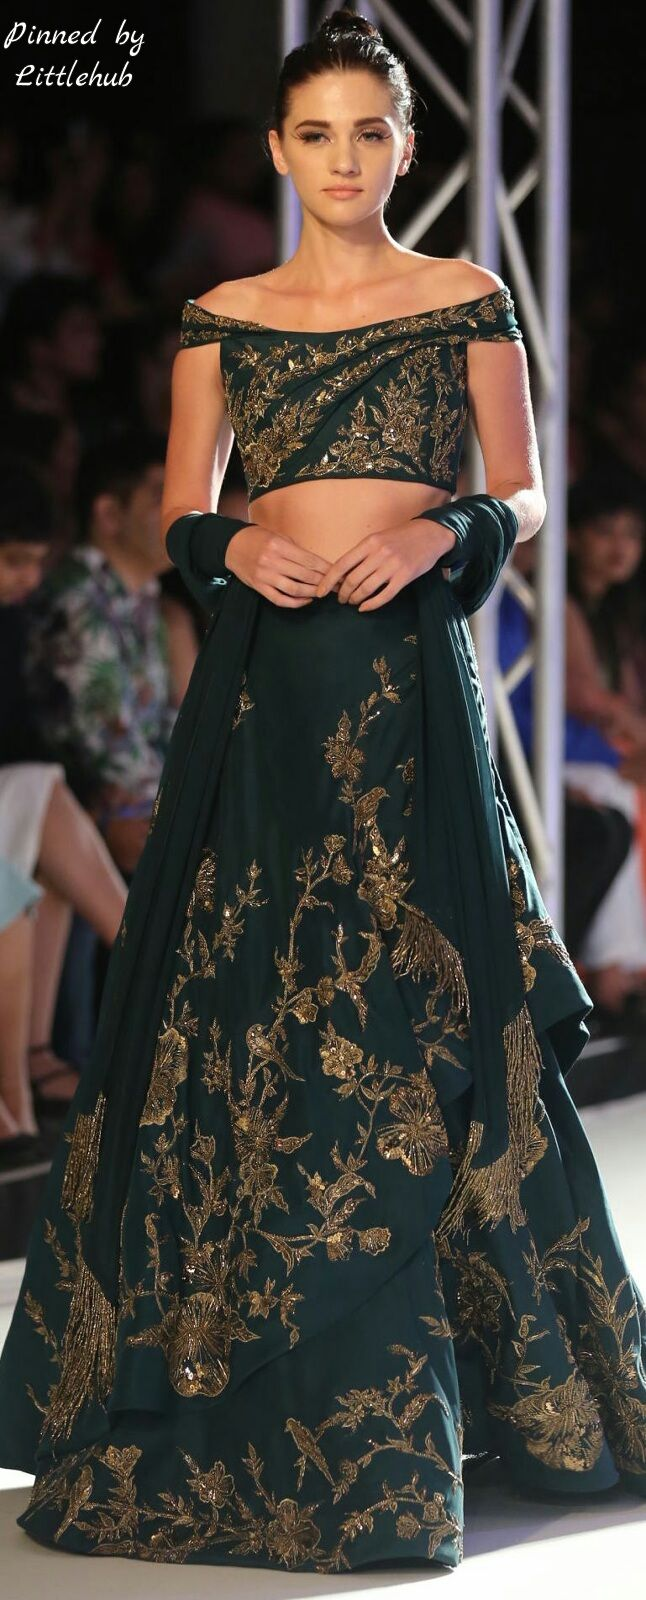 The 1000+ best That Eastern Flair images on Pinterest | Indian gowns ...